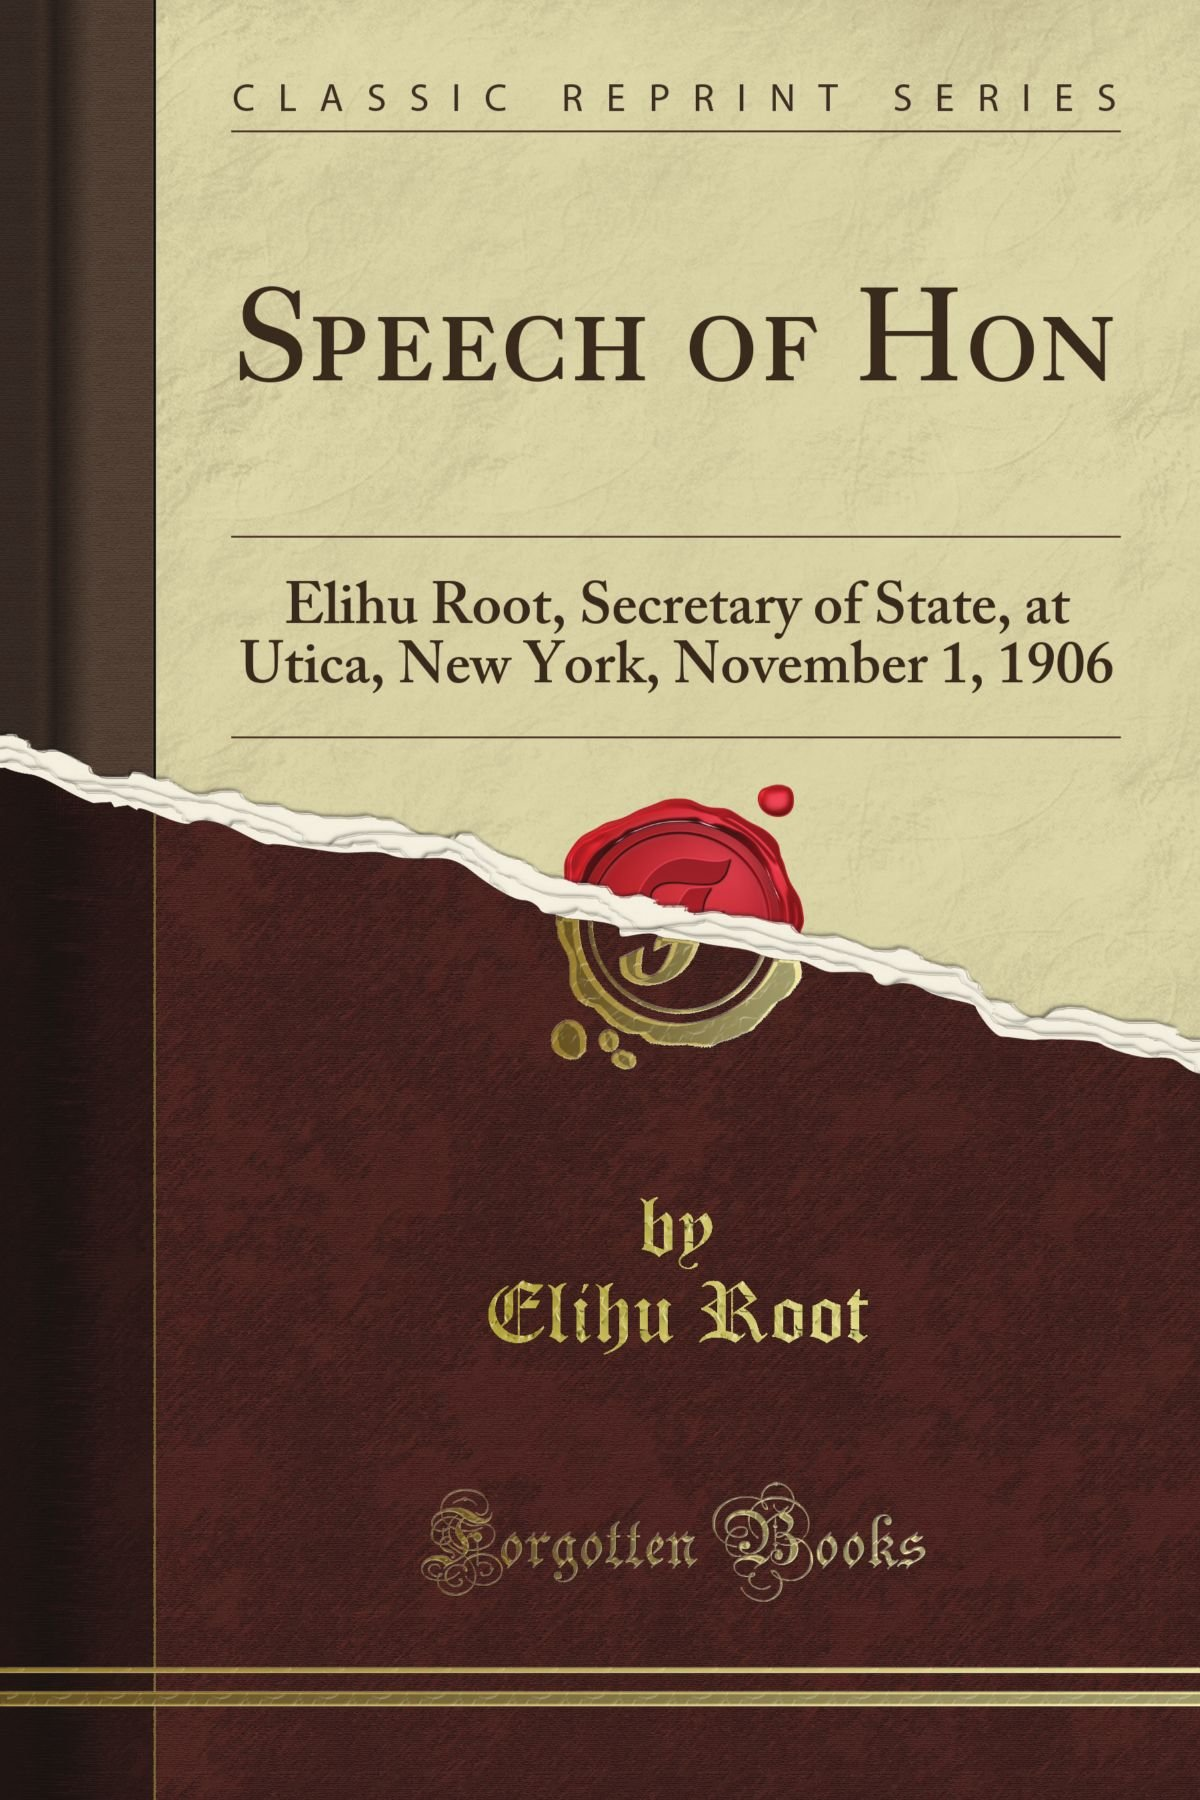 Speech of Hon: Elihu Root, Secretary of State, at Utica, New York, November 1, 1906 (Classic Reprint) ebook